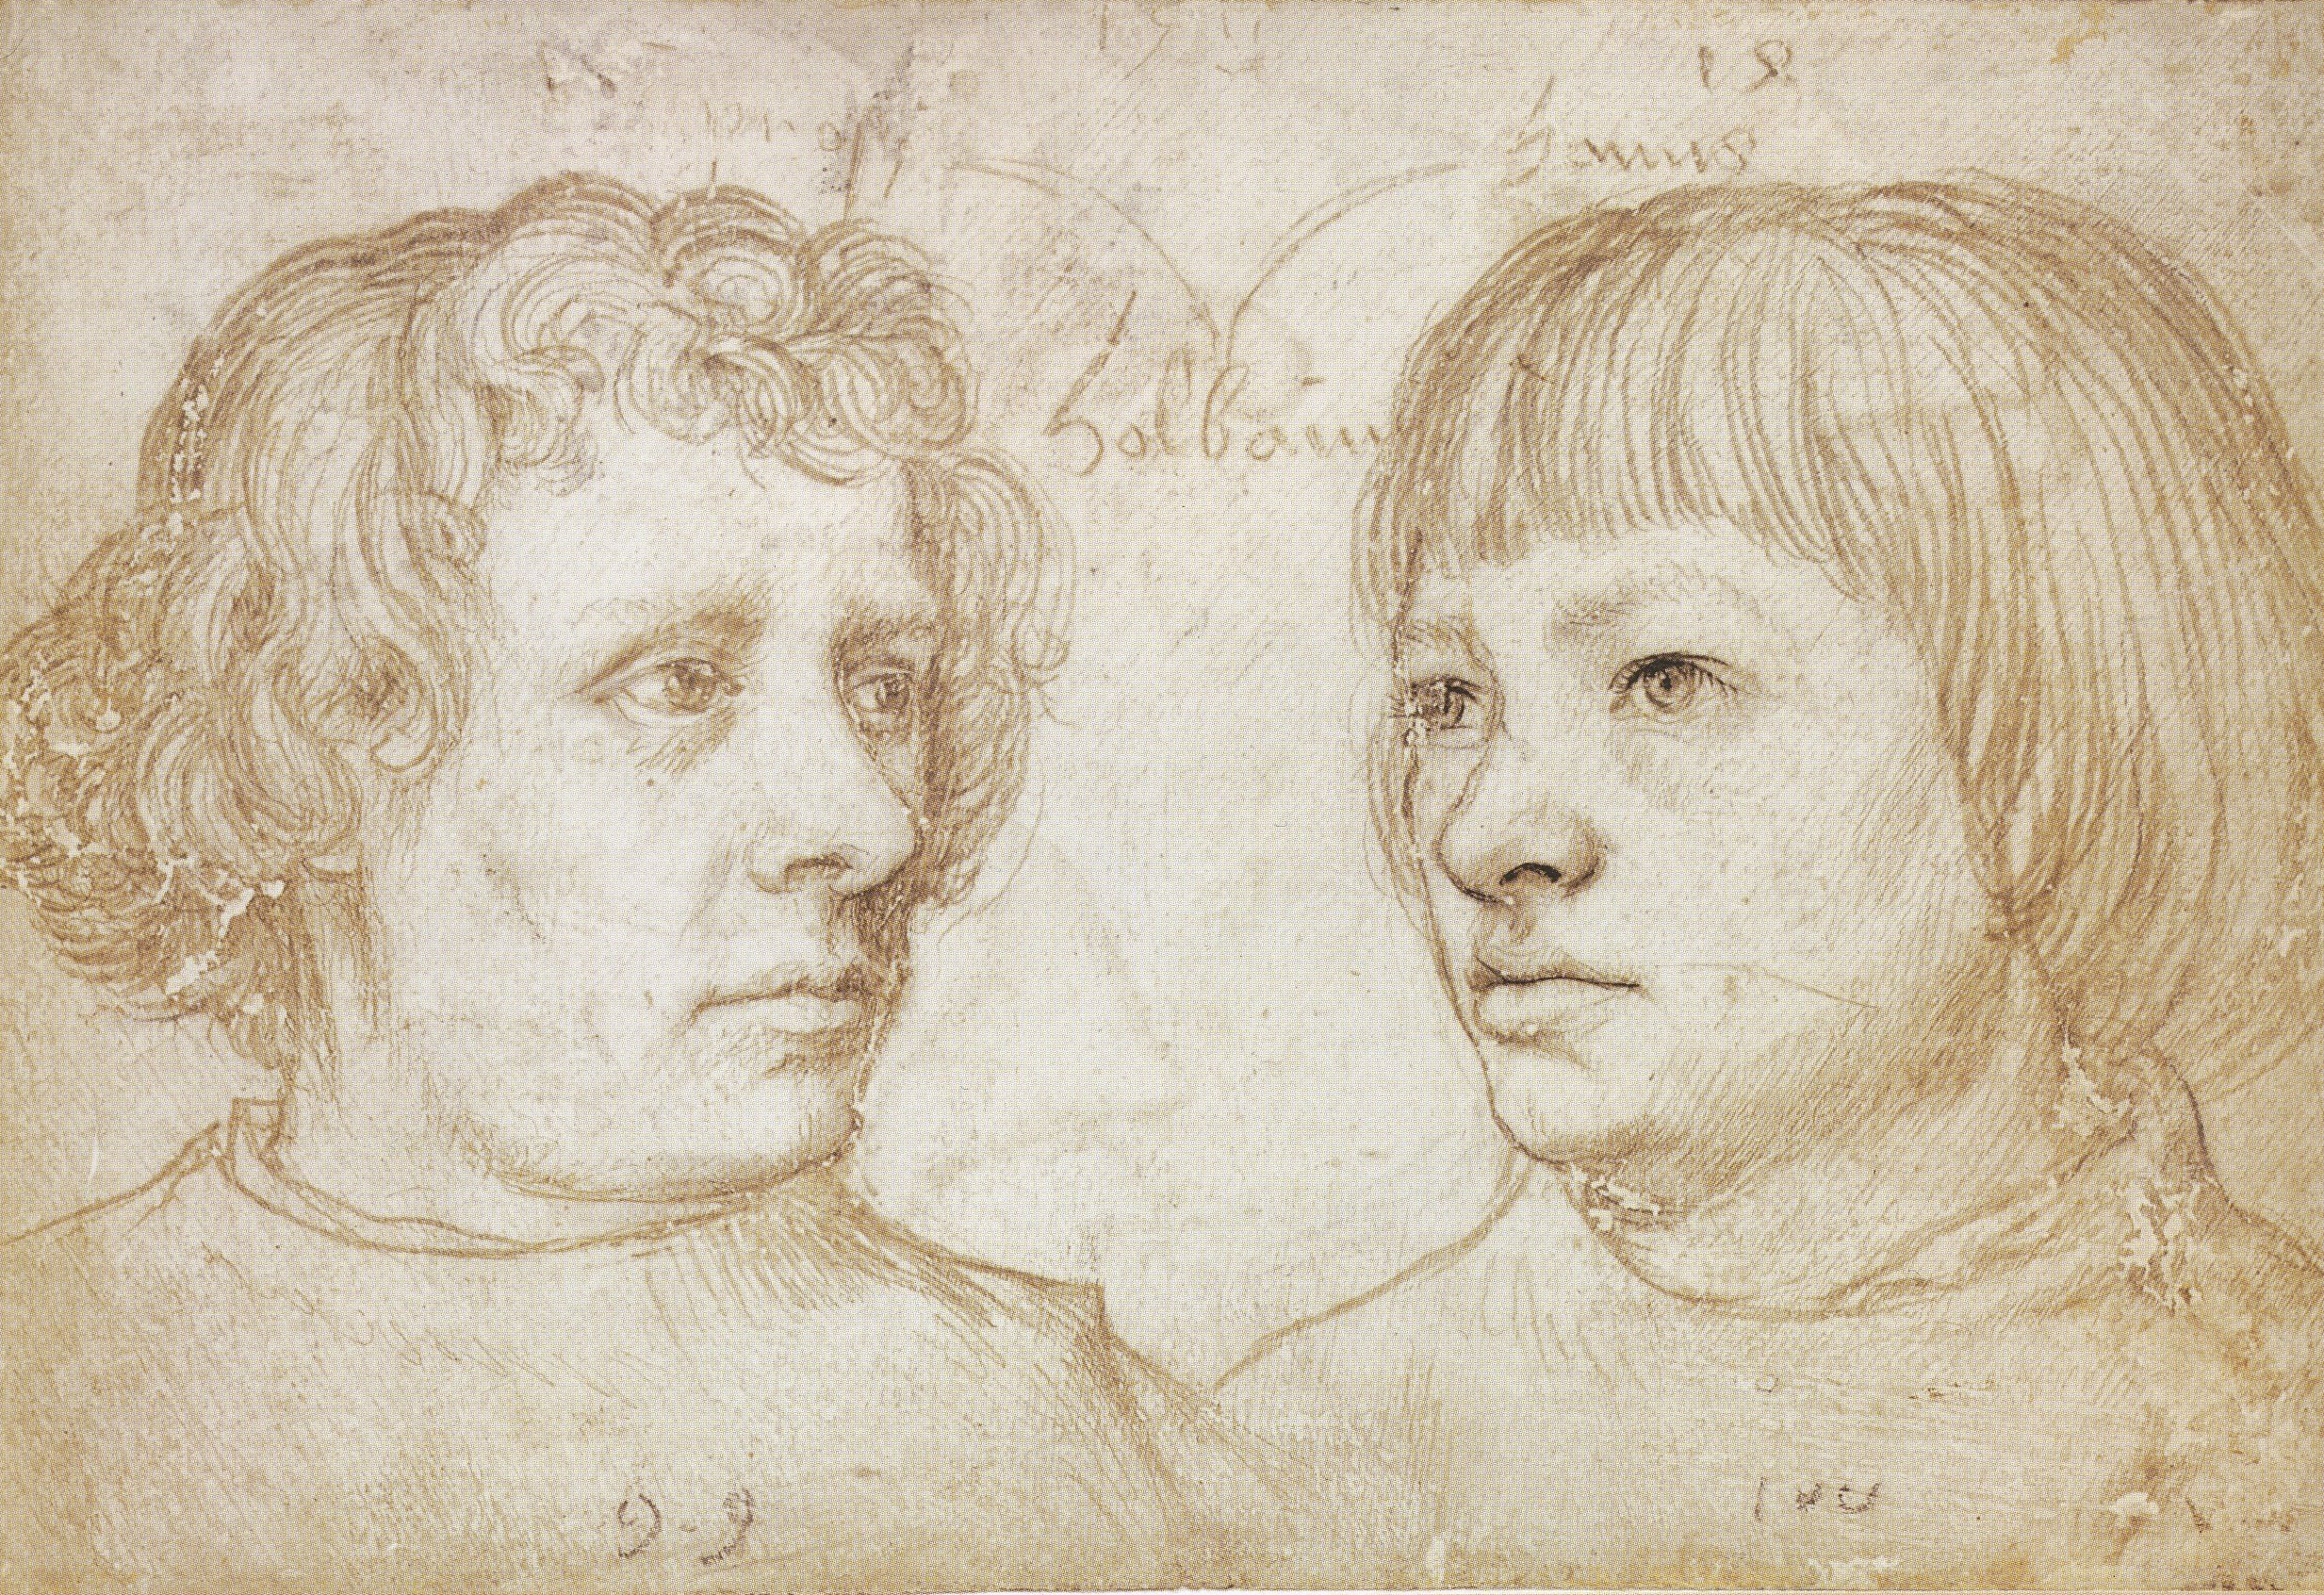 Ambrosius and Hans Holbein, by Hans Holbein the Elder